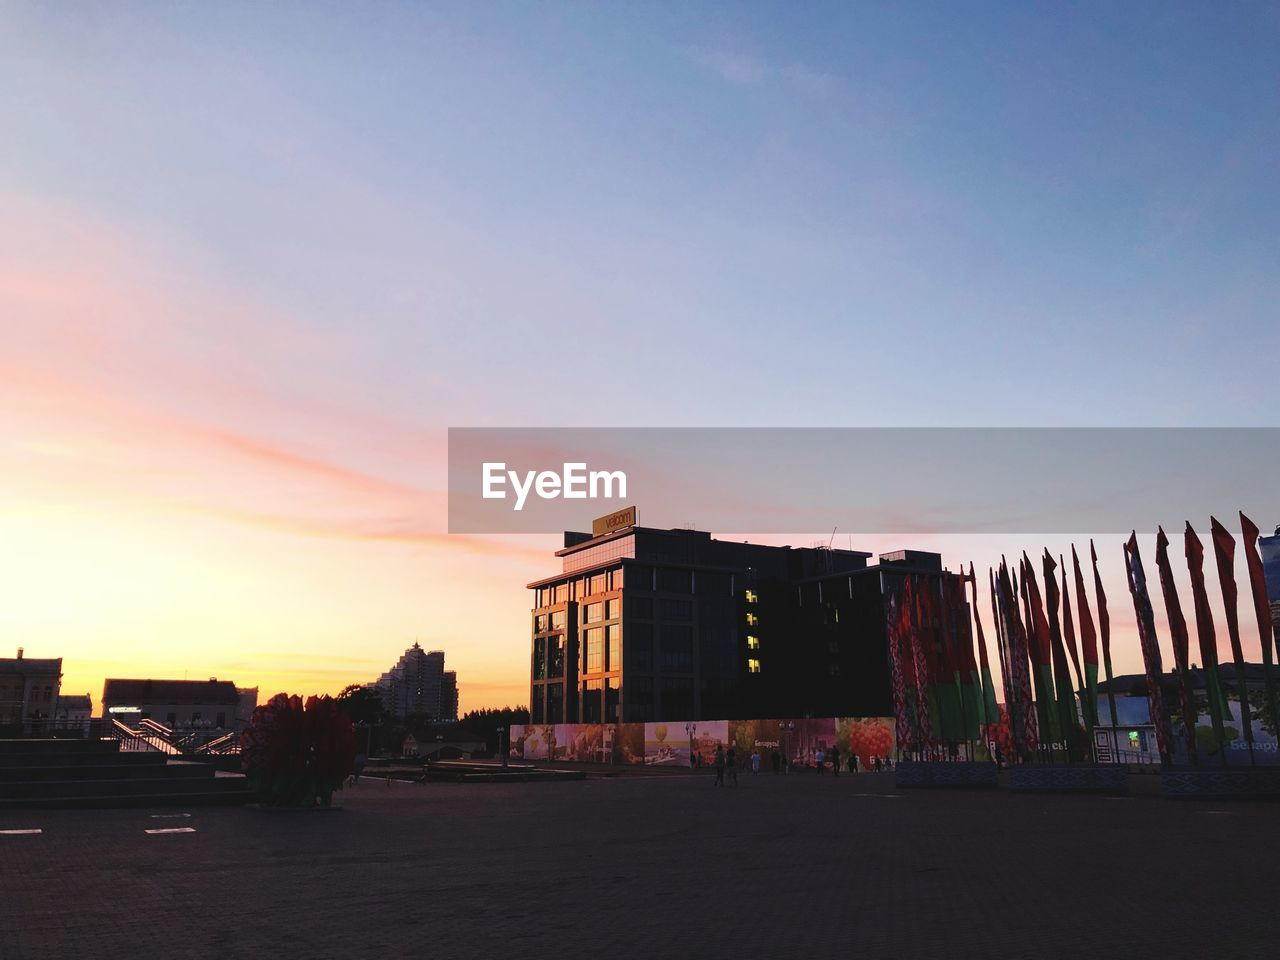 sky, architecture, built structure, building exterior, sunset, city, nature, building, orange color, no people, outdoors, transportation, residential district, clear sky, copy space, street, multi colored, dusk, road